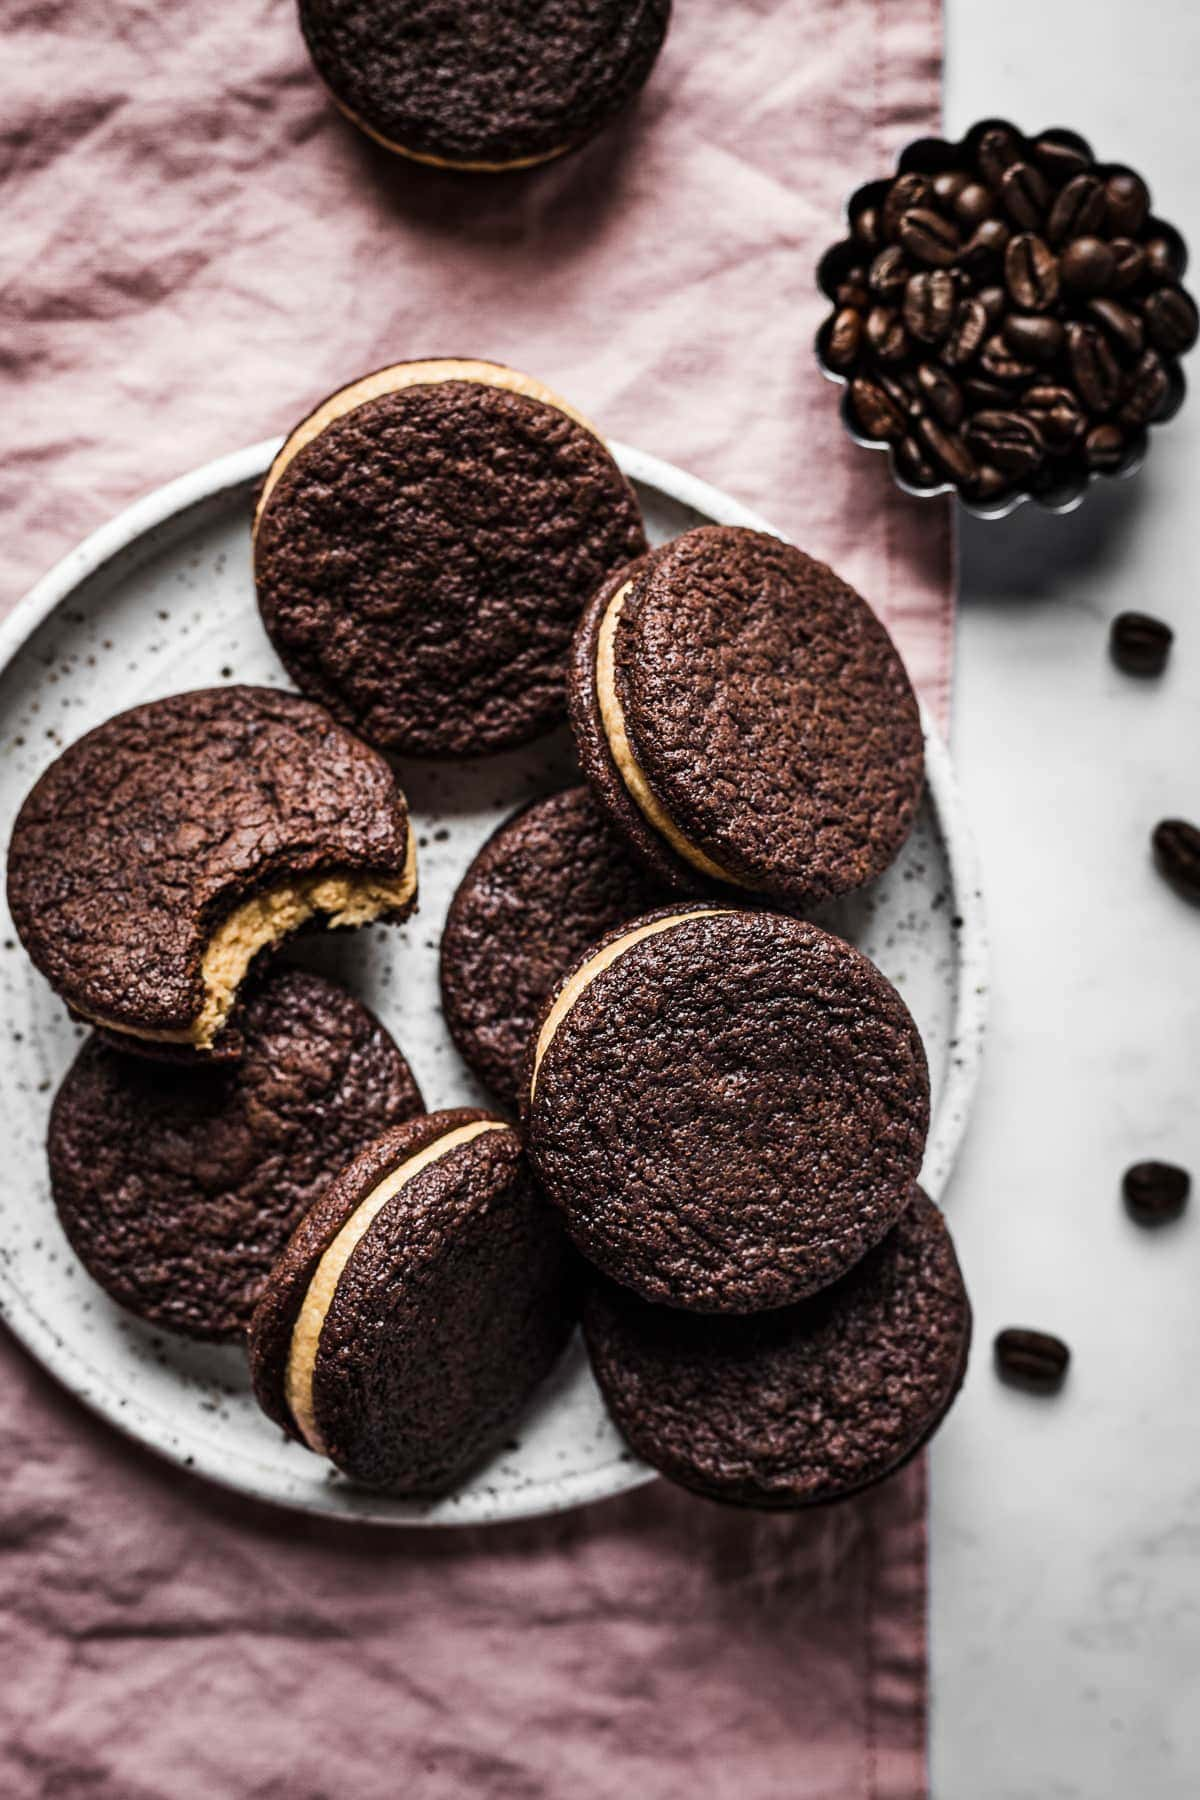 A pile of chocolate cookies on a speckled white ceramic plate on a pink linen surface. Nearby are more cookies and a small fluted container of coffee beans. One cookie has a bite taken out of it, revealing the coffee mascarpone frosting.